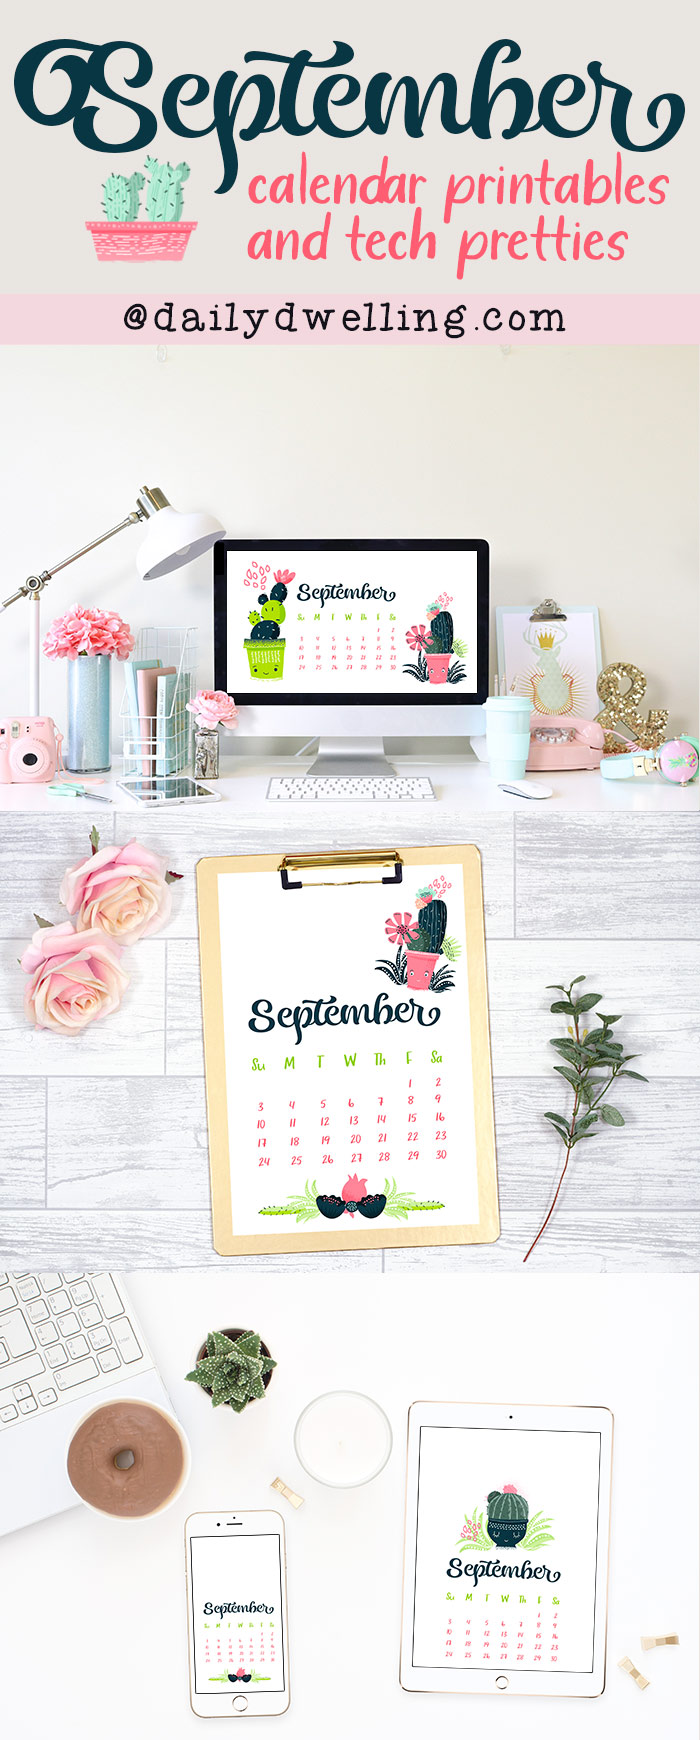 September 2017 Calendar Printables and Tech Pretties